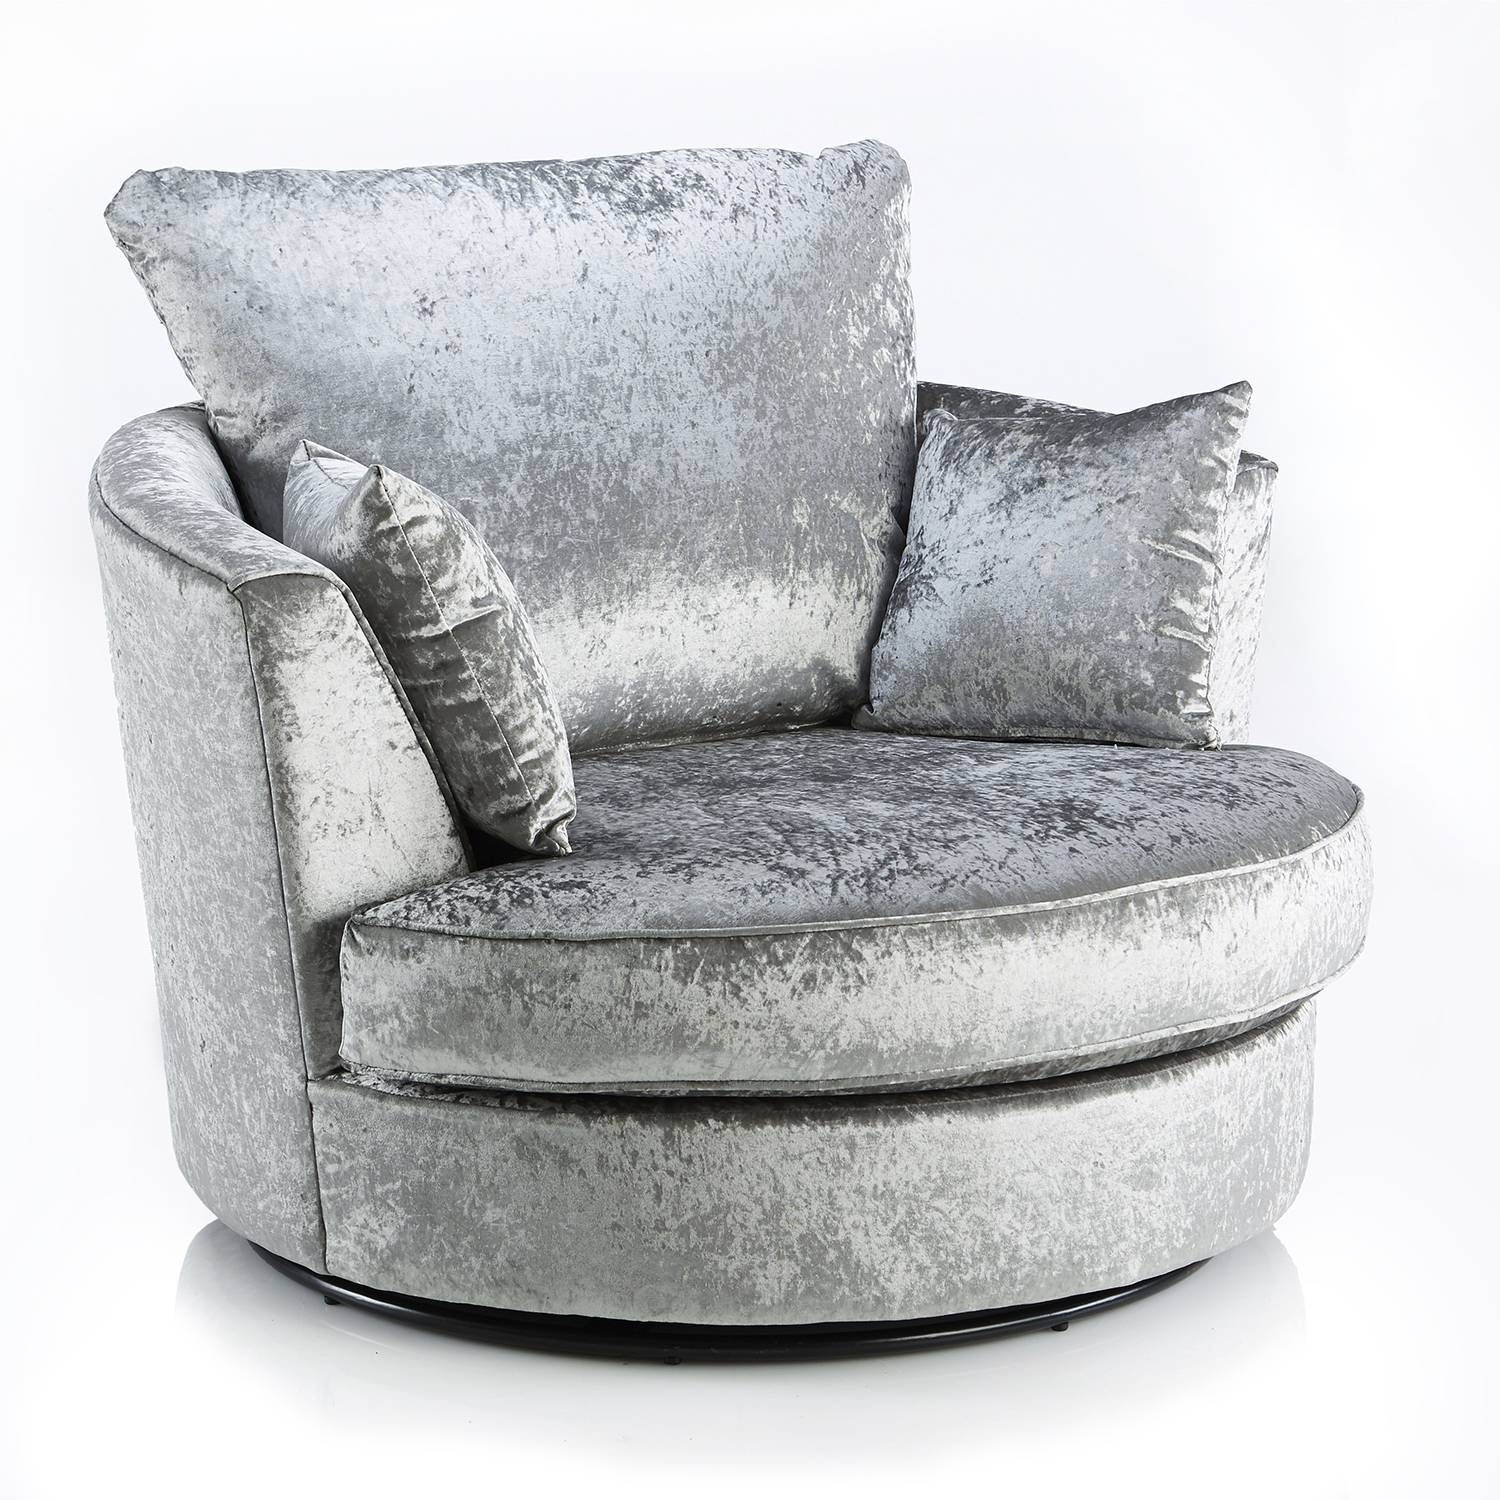 Crushed Velvet Furniture | Sofas, Beds, Chairs, Cushions within Sofa With Swivel Chair (Image 15 of 30)